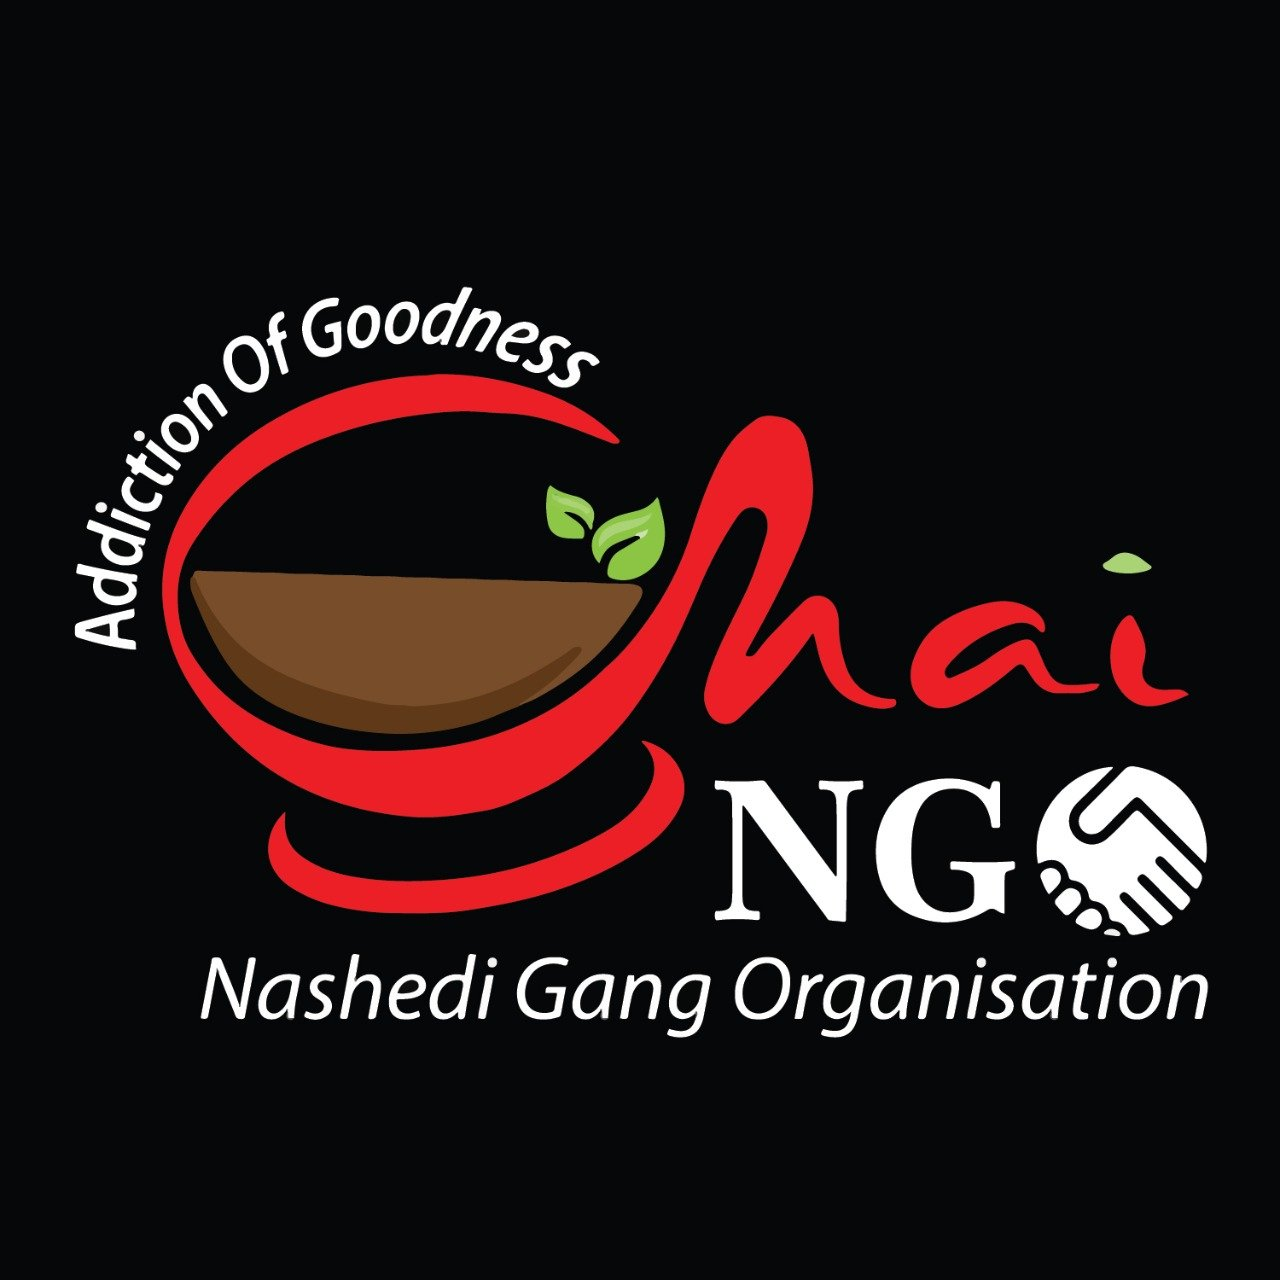 Food and Beverage Franchise Business Opportunity – Chai NGO, Chaat Formula and Chicken Formula